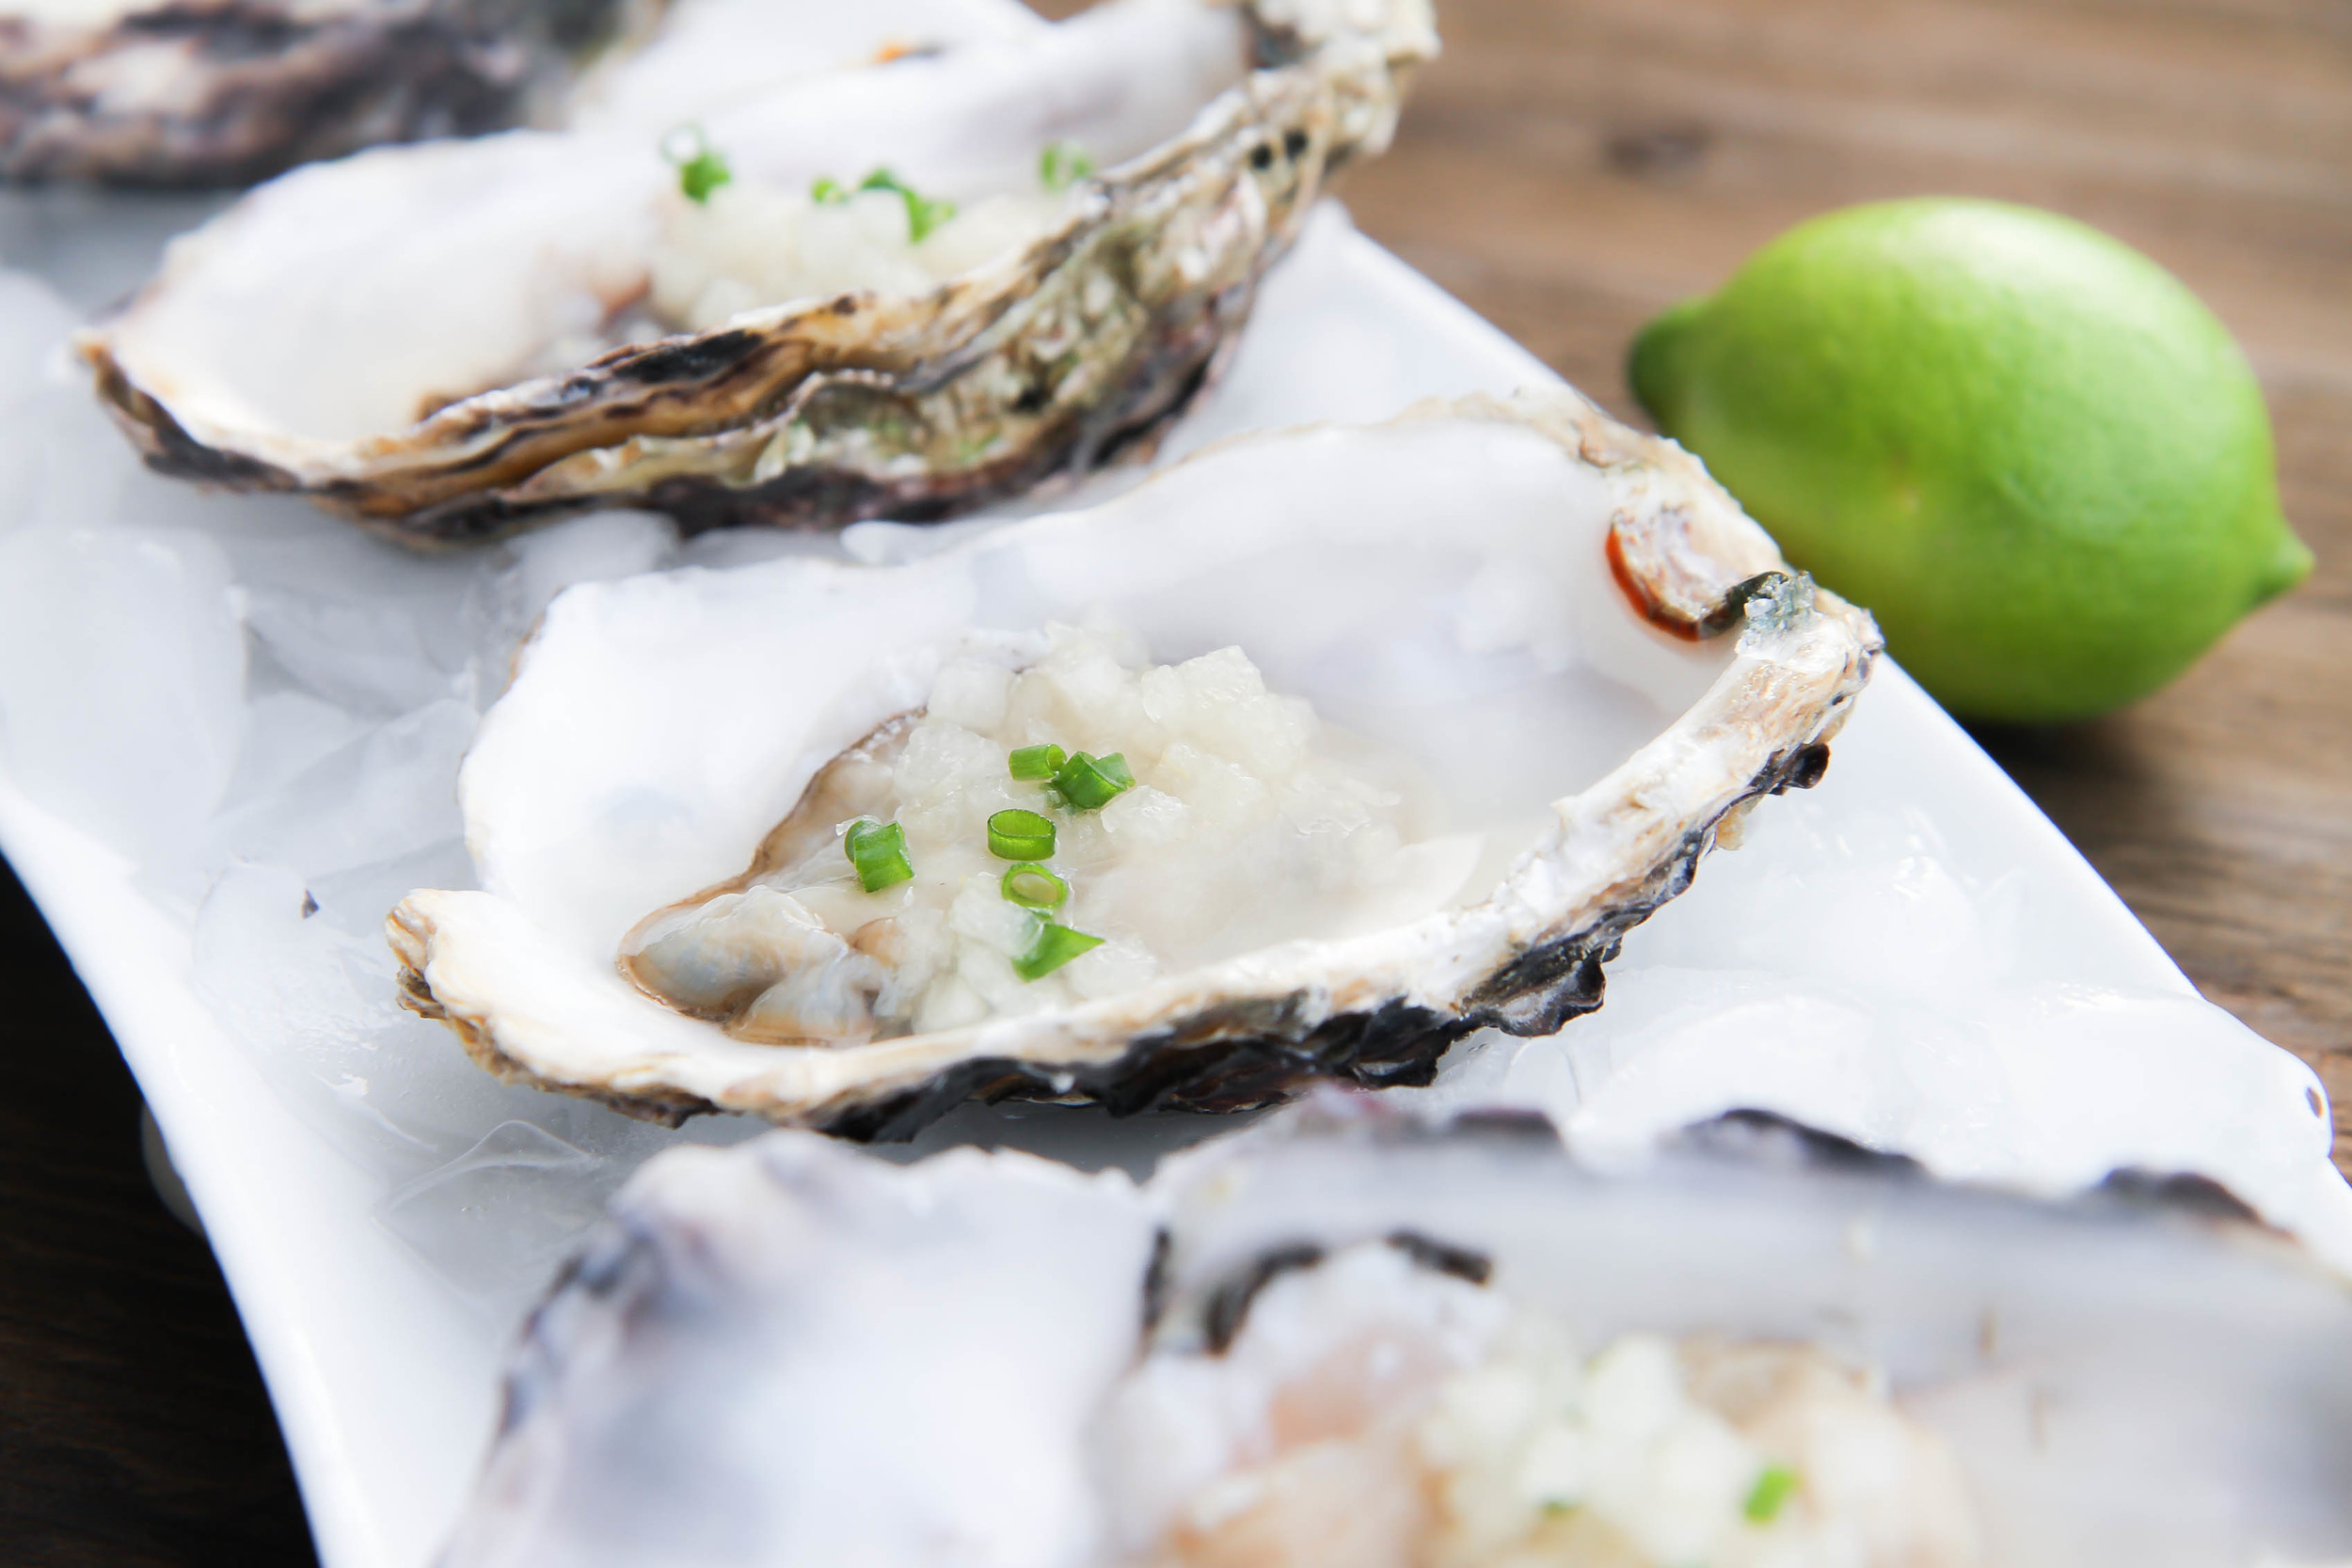 Raw oysters on the half shell with an Asian mignonette sauce